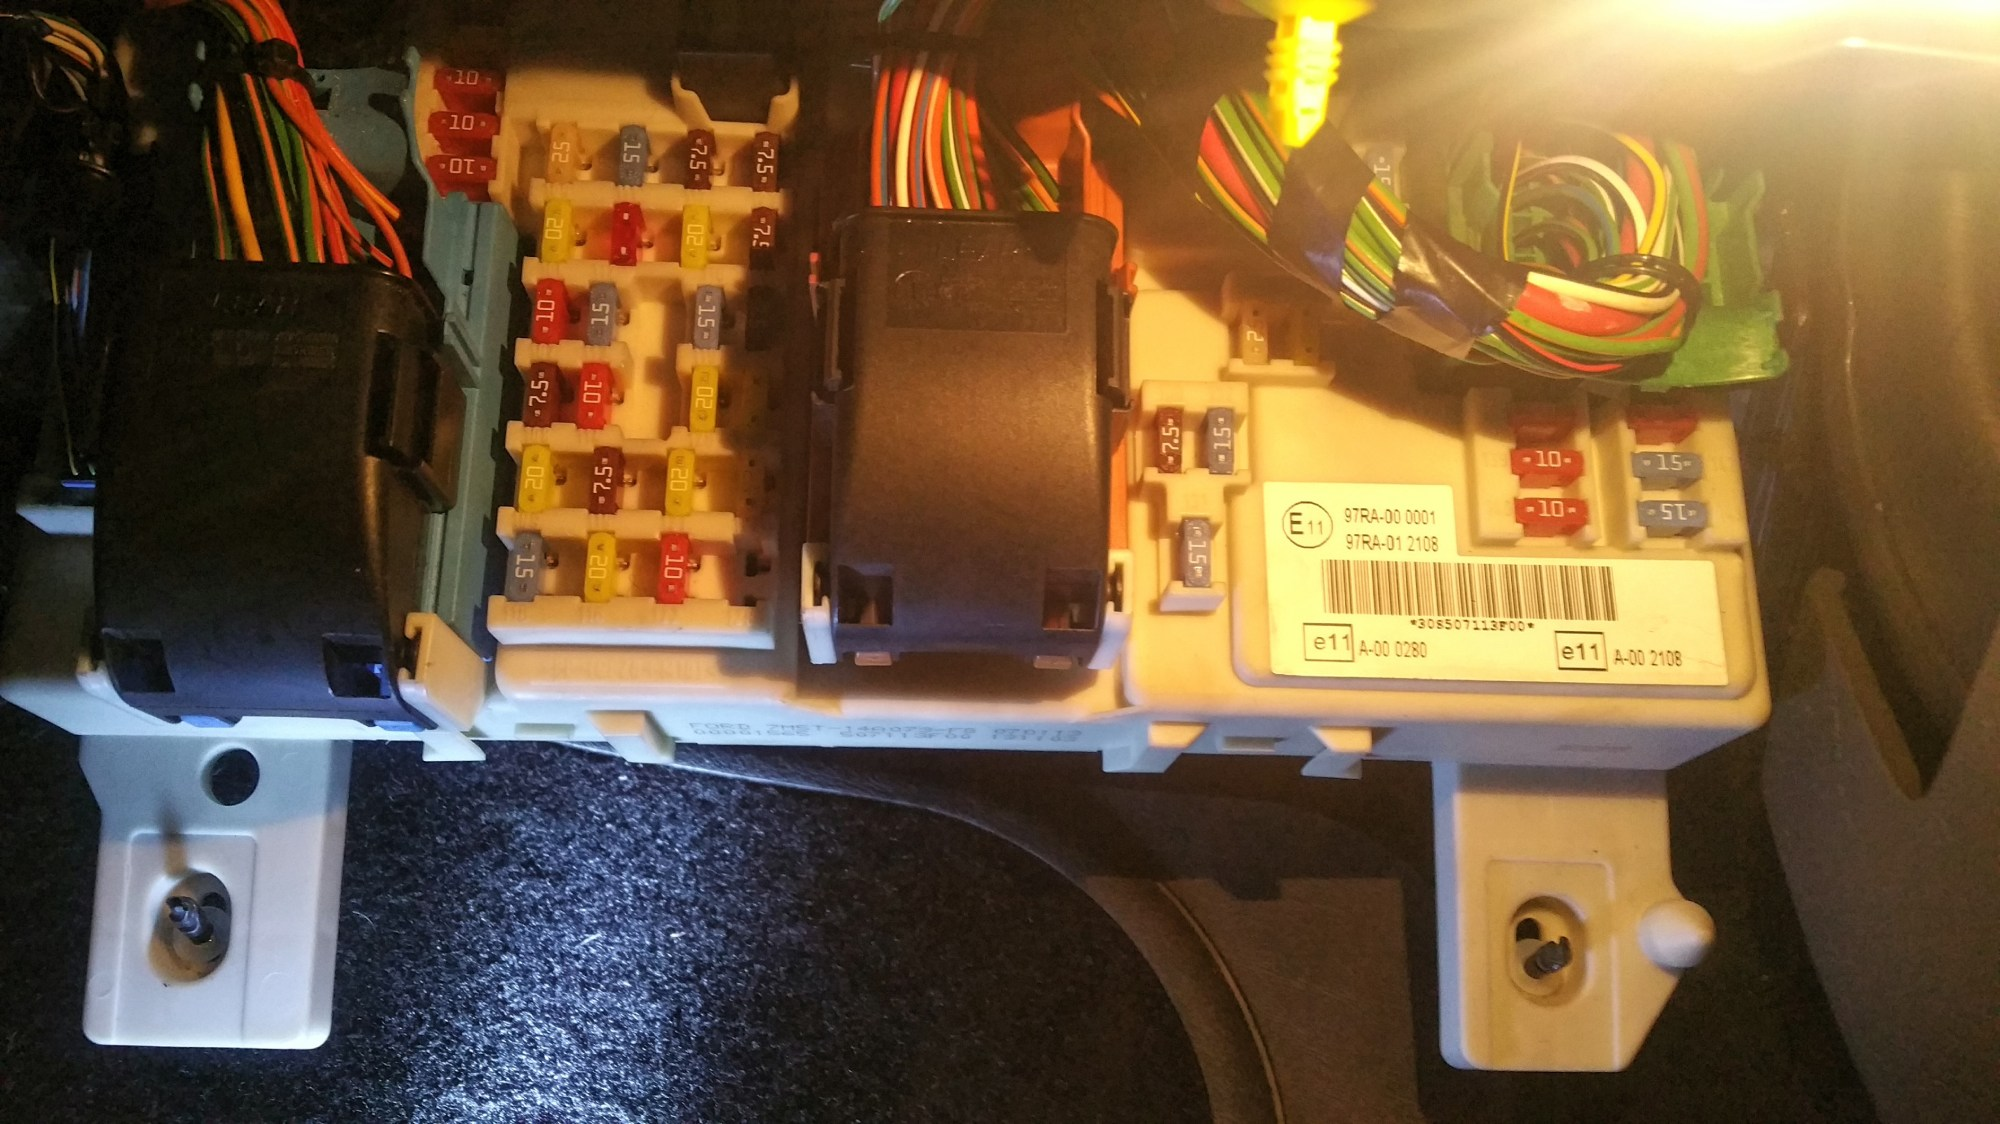 hight resolution of central fuse box seems wrong ford focus club ford owners club ford focus 55 fuse box